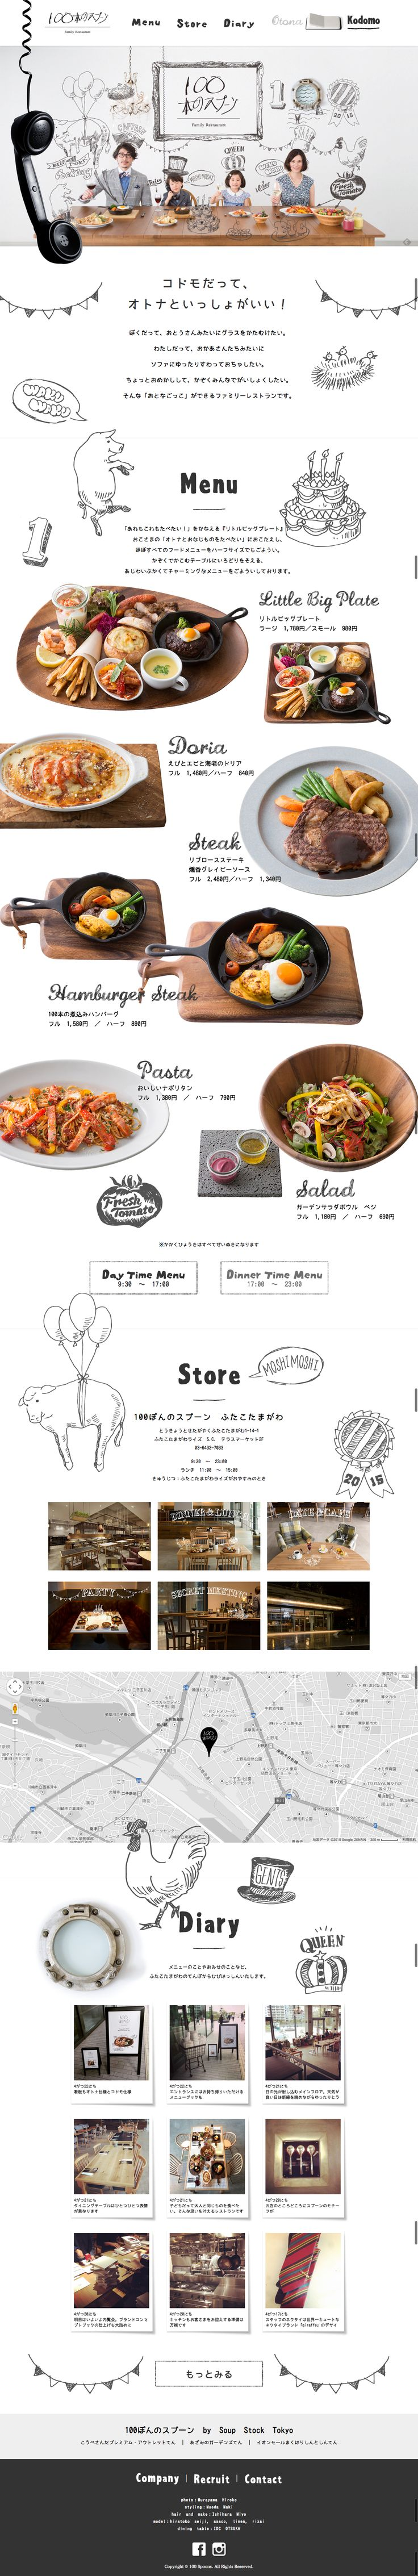 100spoons.com, family restaurant #website